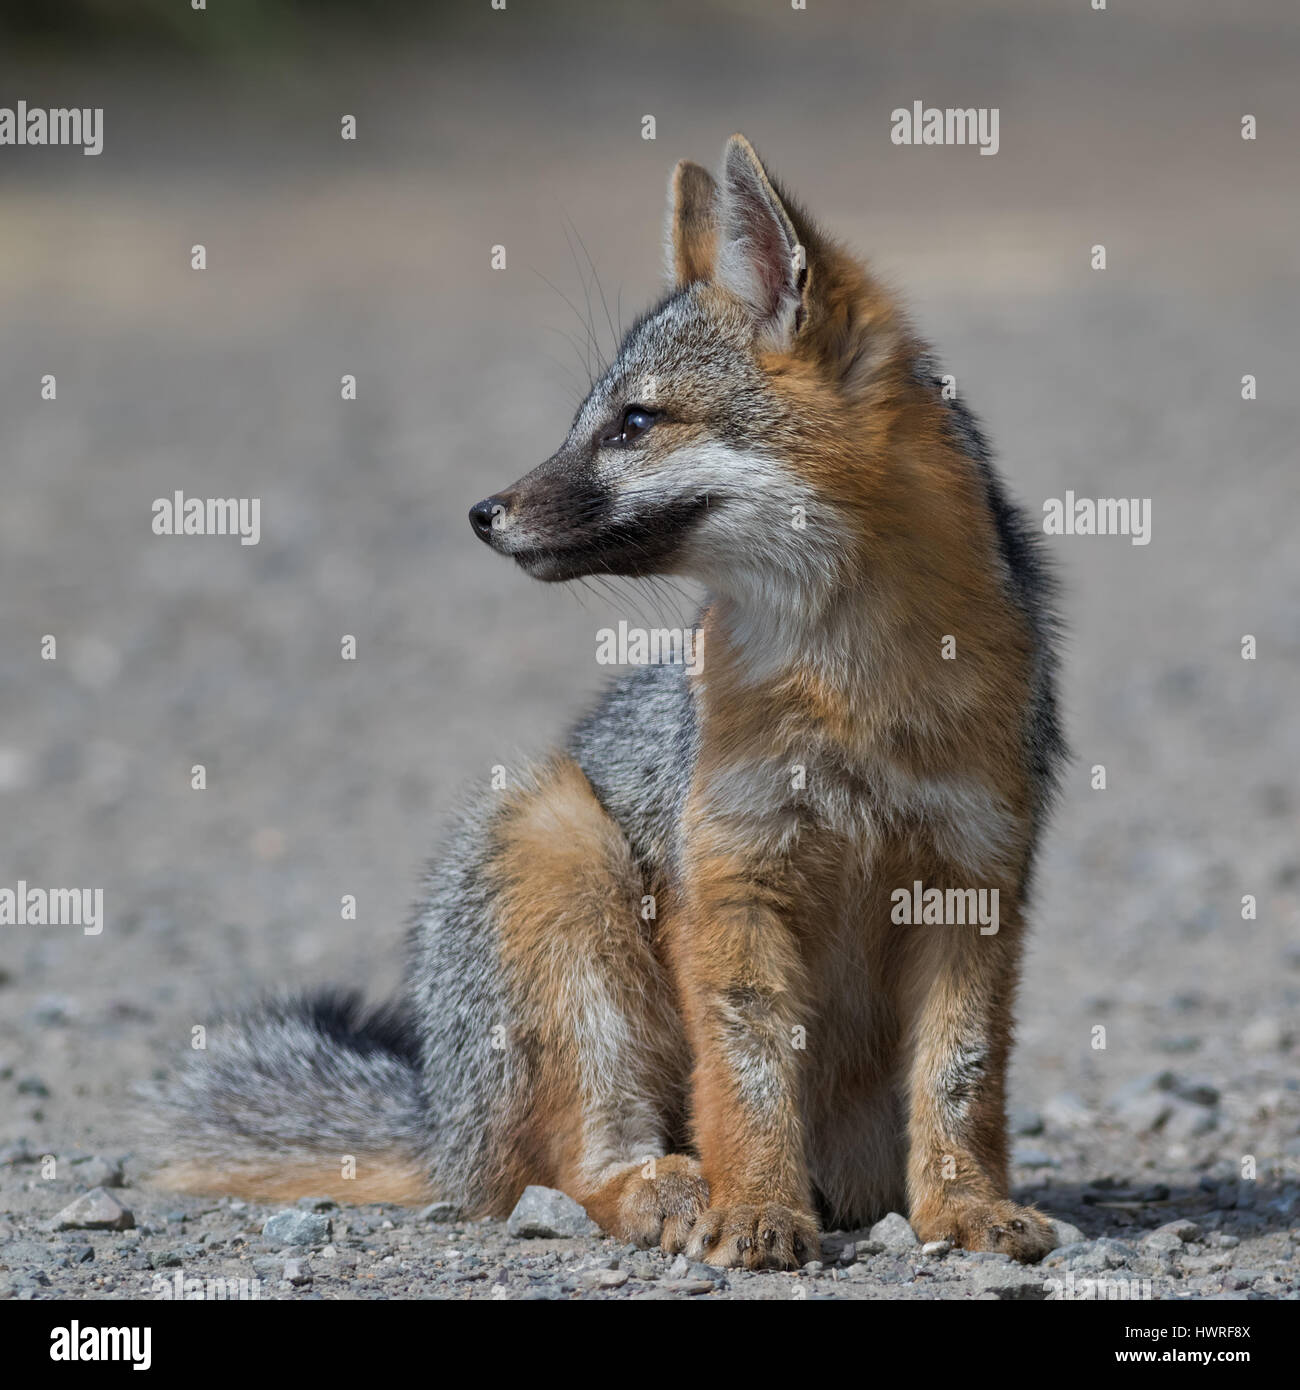 A Gray Fox kit waits patiently for mom to bring prey. This is an unbaited, wild animal. - Stock Image